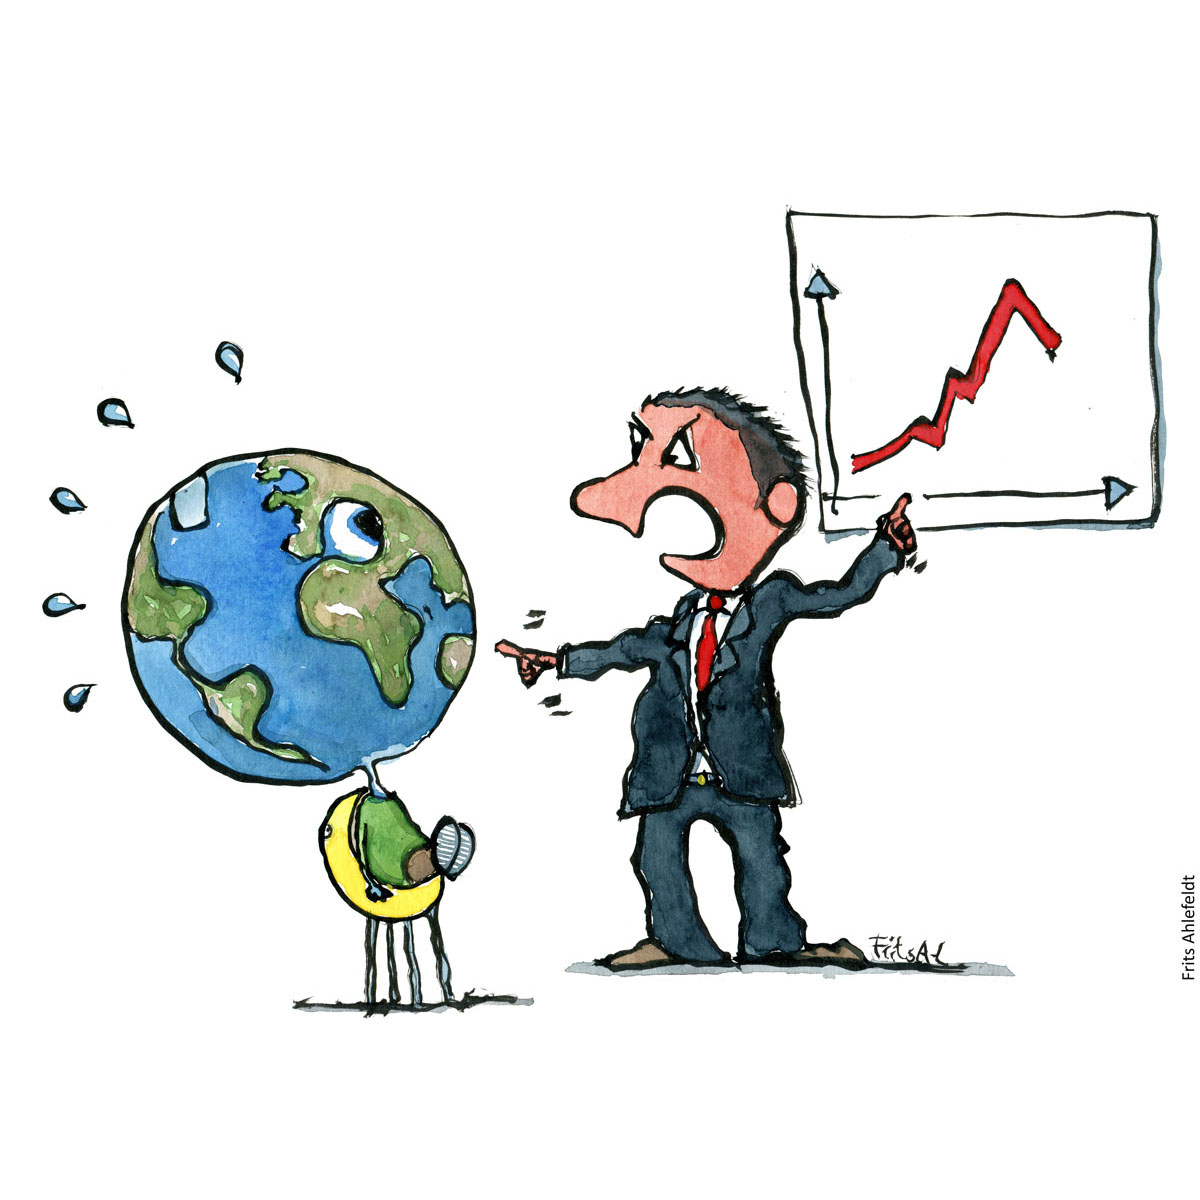 Drawing of Planet Earth and businessman. Businessman complaining about the results. Environment and resources. Handmade color illustration by Frits Ahlefeldt